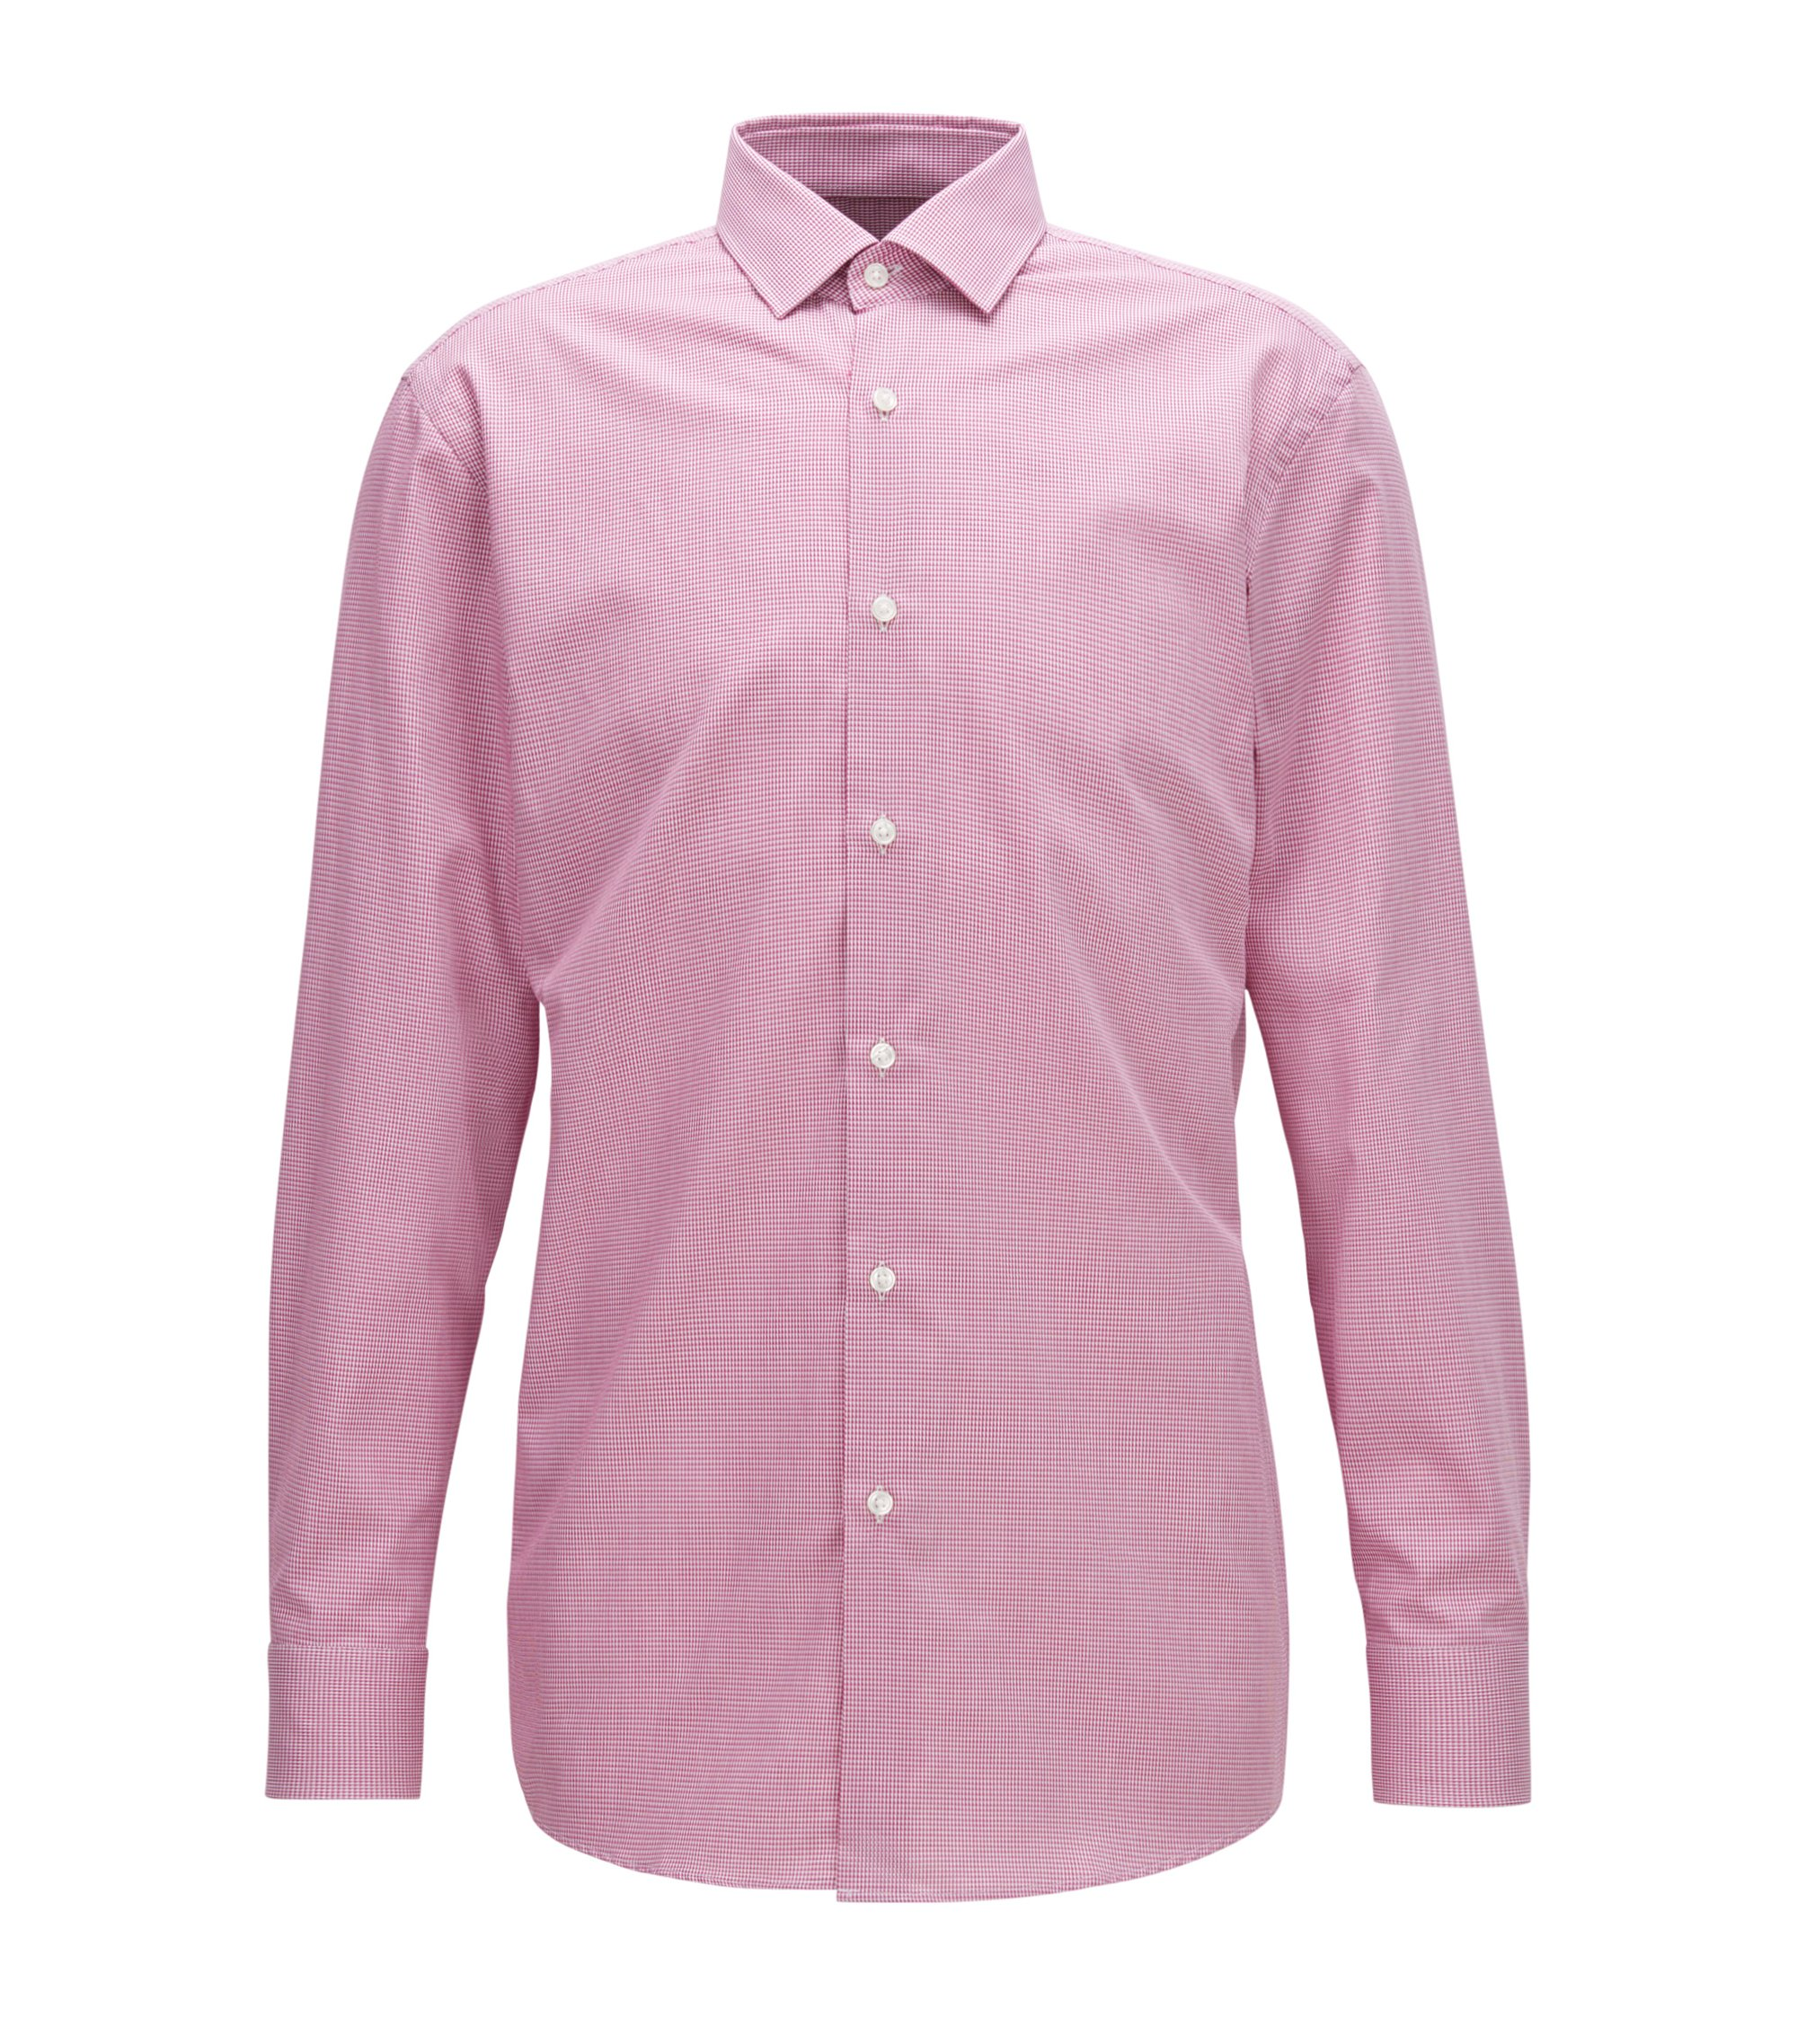 Nailhead Cotton Dress Shirt, Slim Fit | Marley US, Dark pink